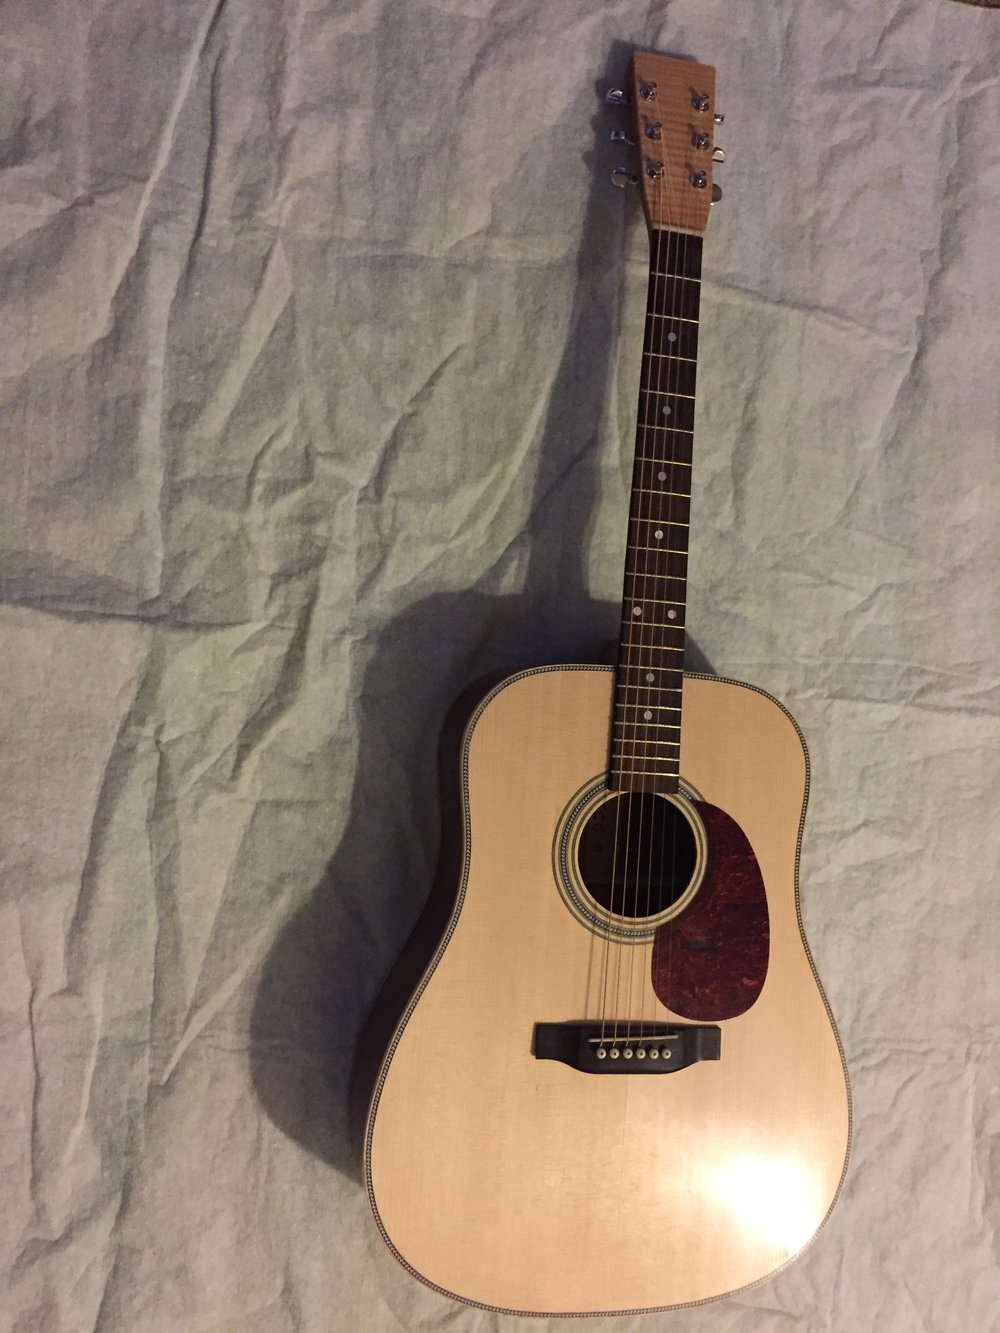 This guitar was donated to a church auction